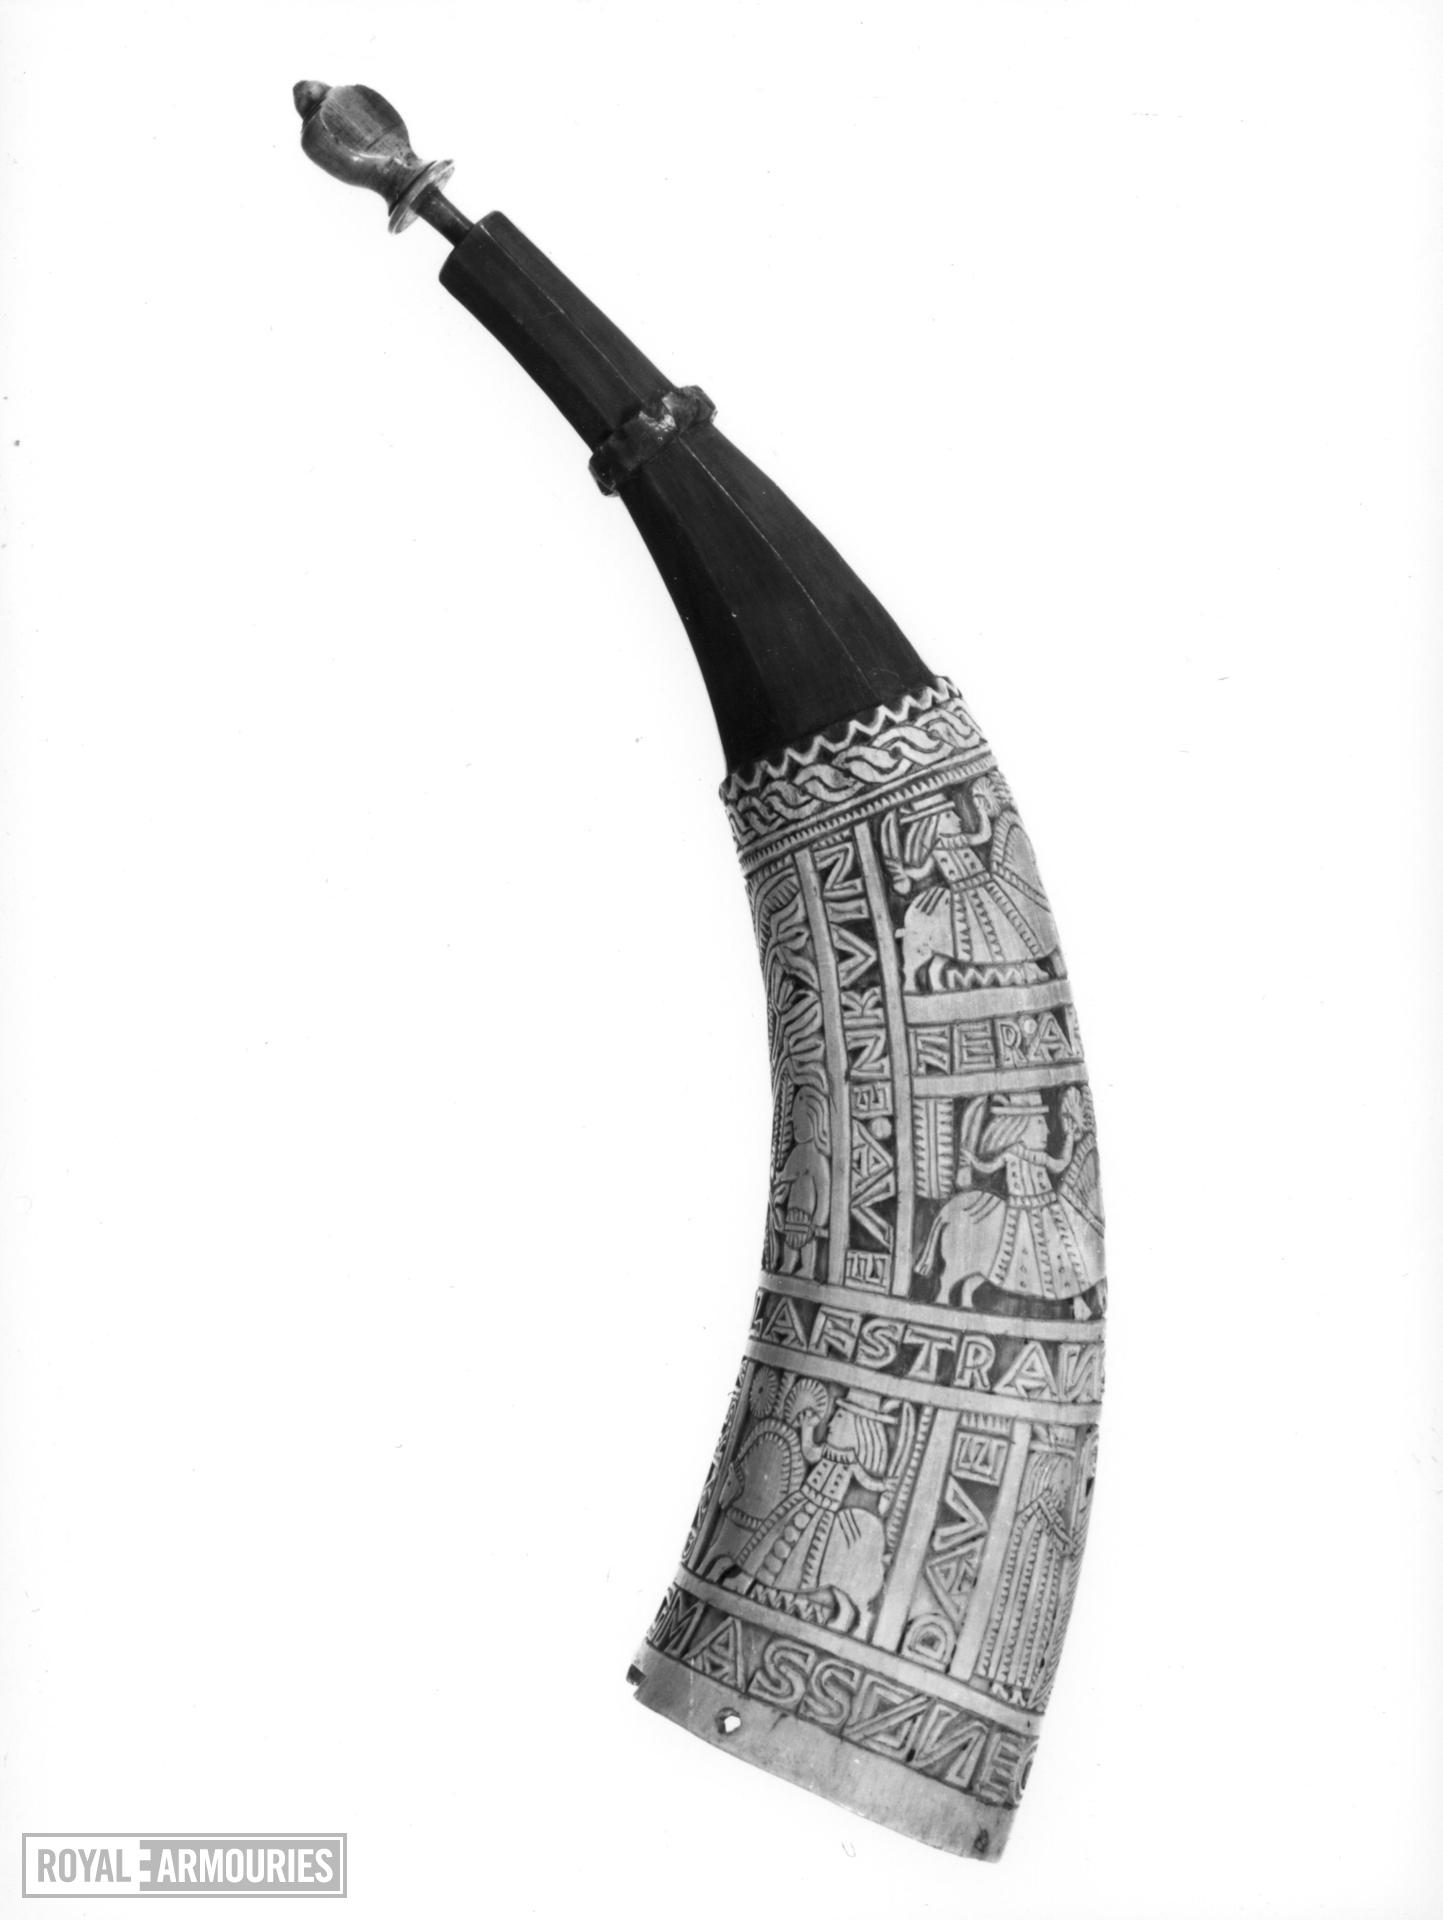 Powder horn Carved in relief from cow horn